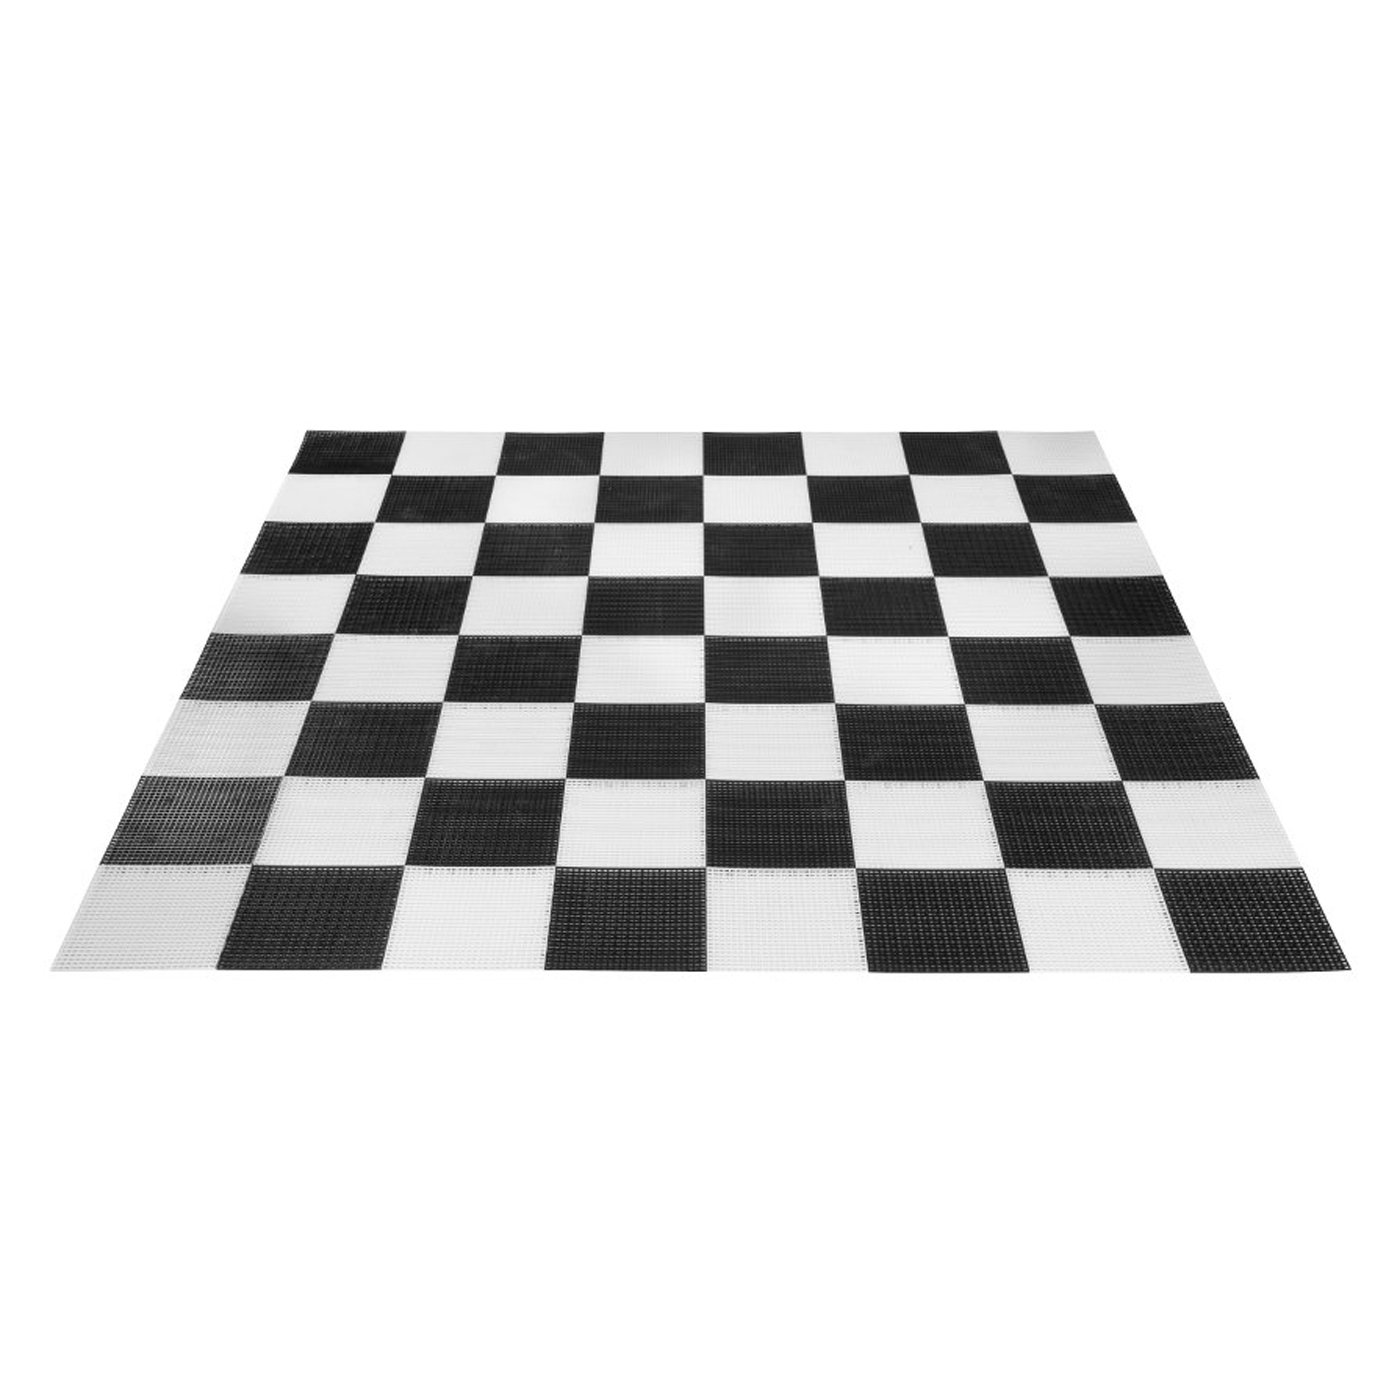 Uber Games Giant Chess Board - Black and White - Plastic - 304cm x 304cm